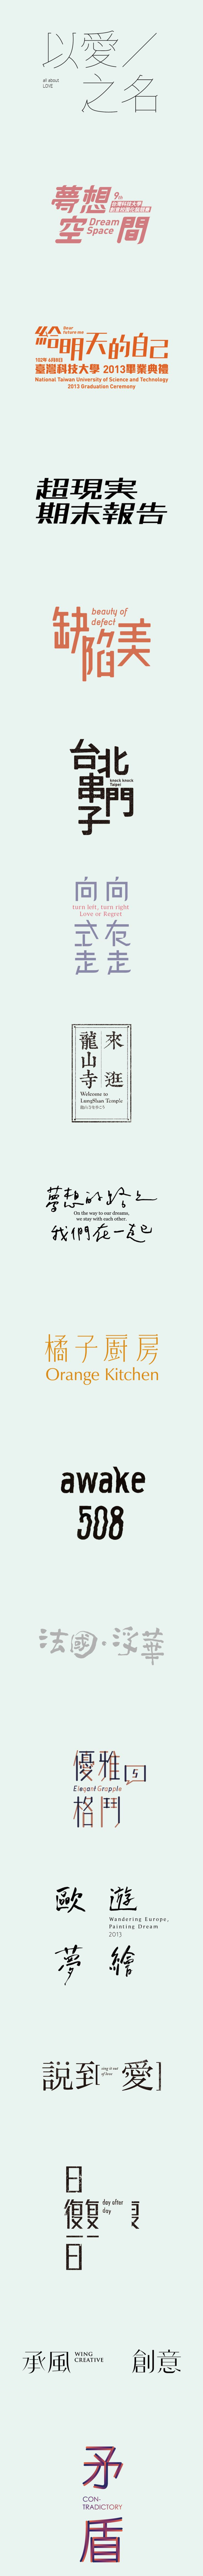 標準字設計 by 田修銓 Not the most exciting, but makes people feel young. Simple pleasure.